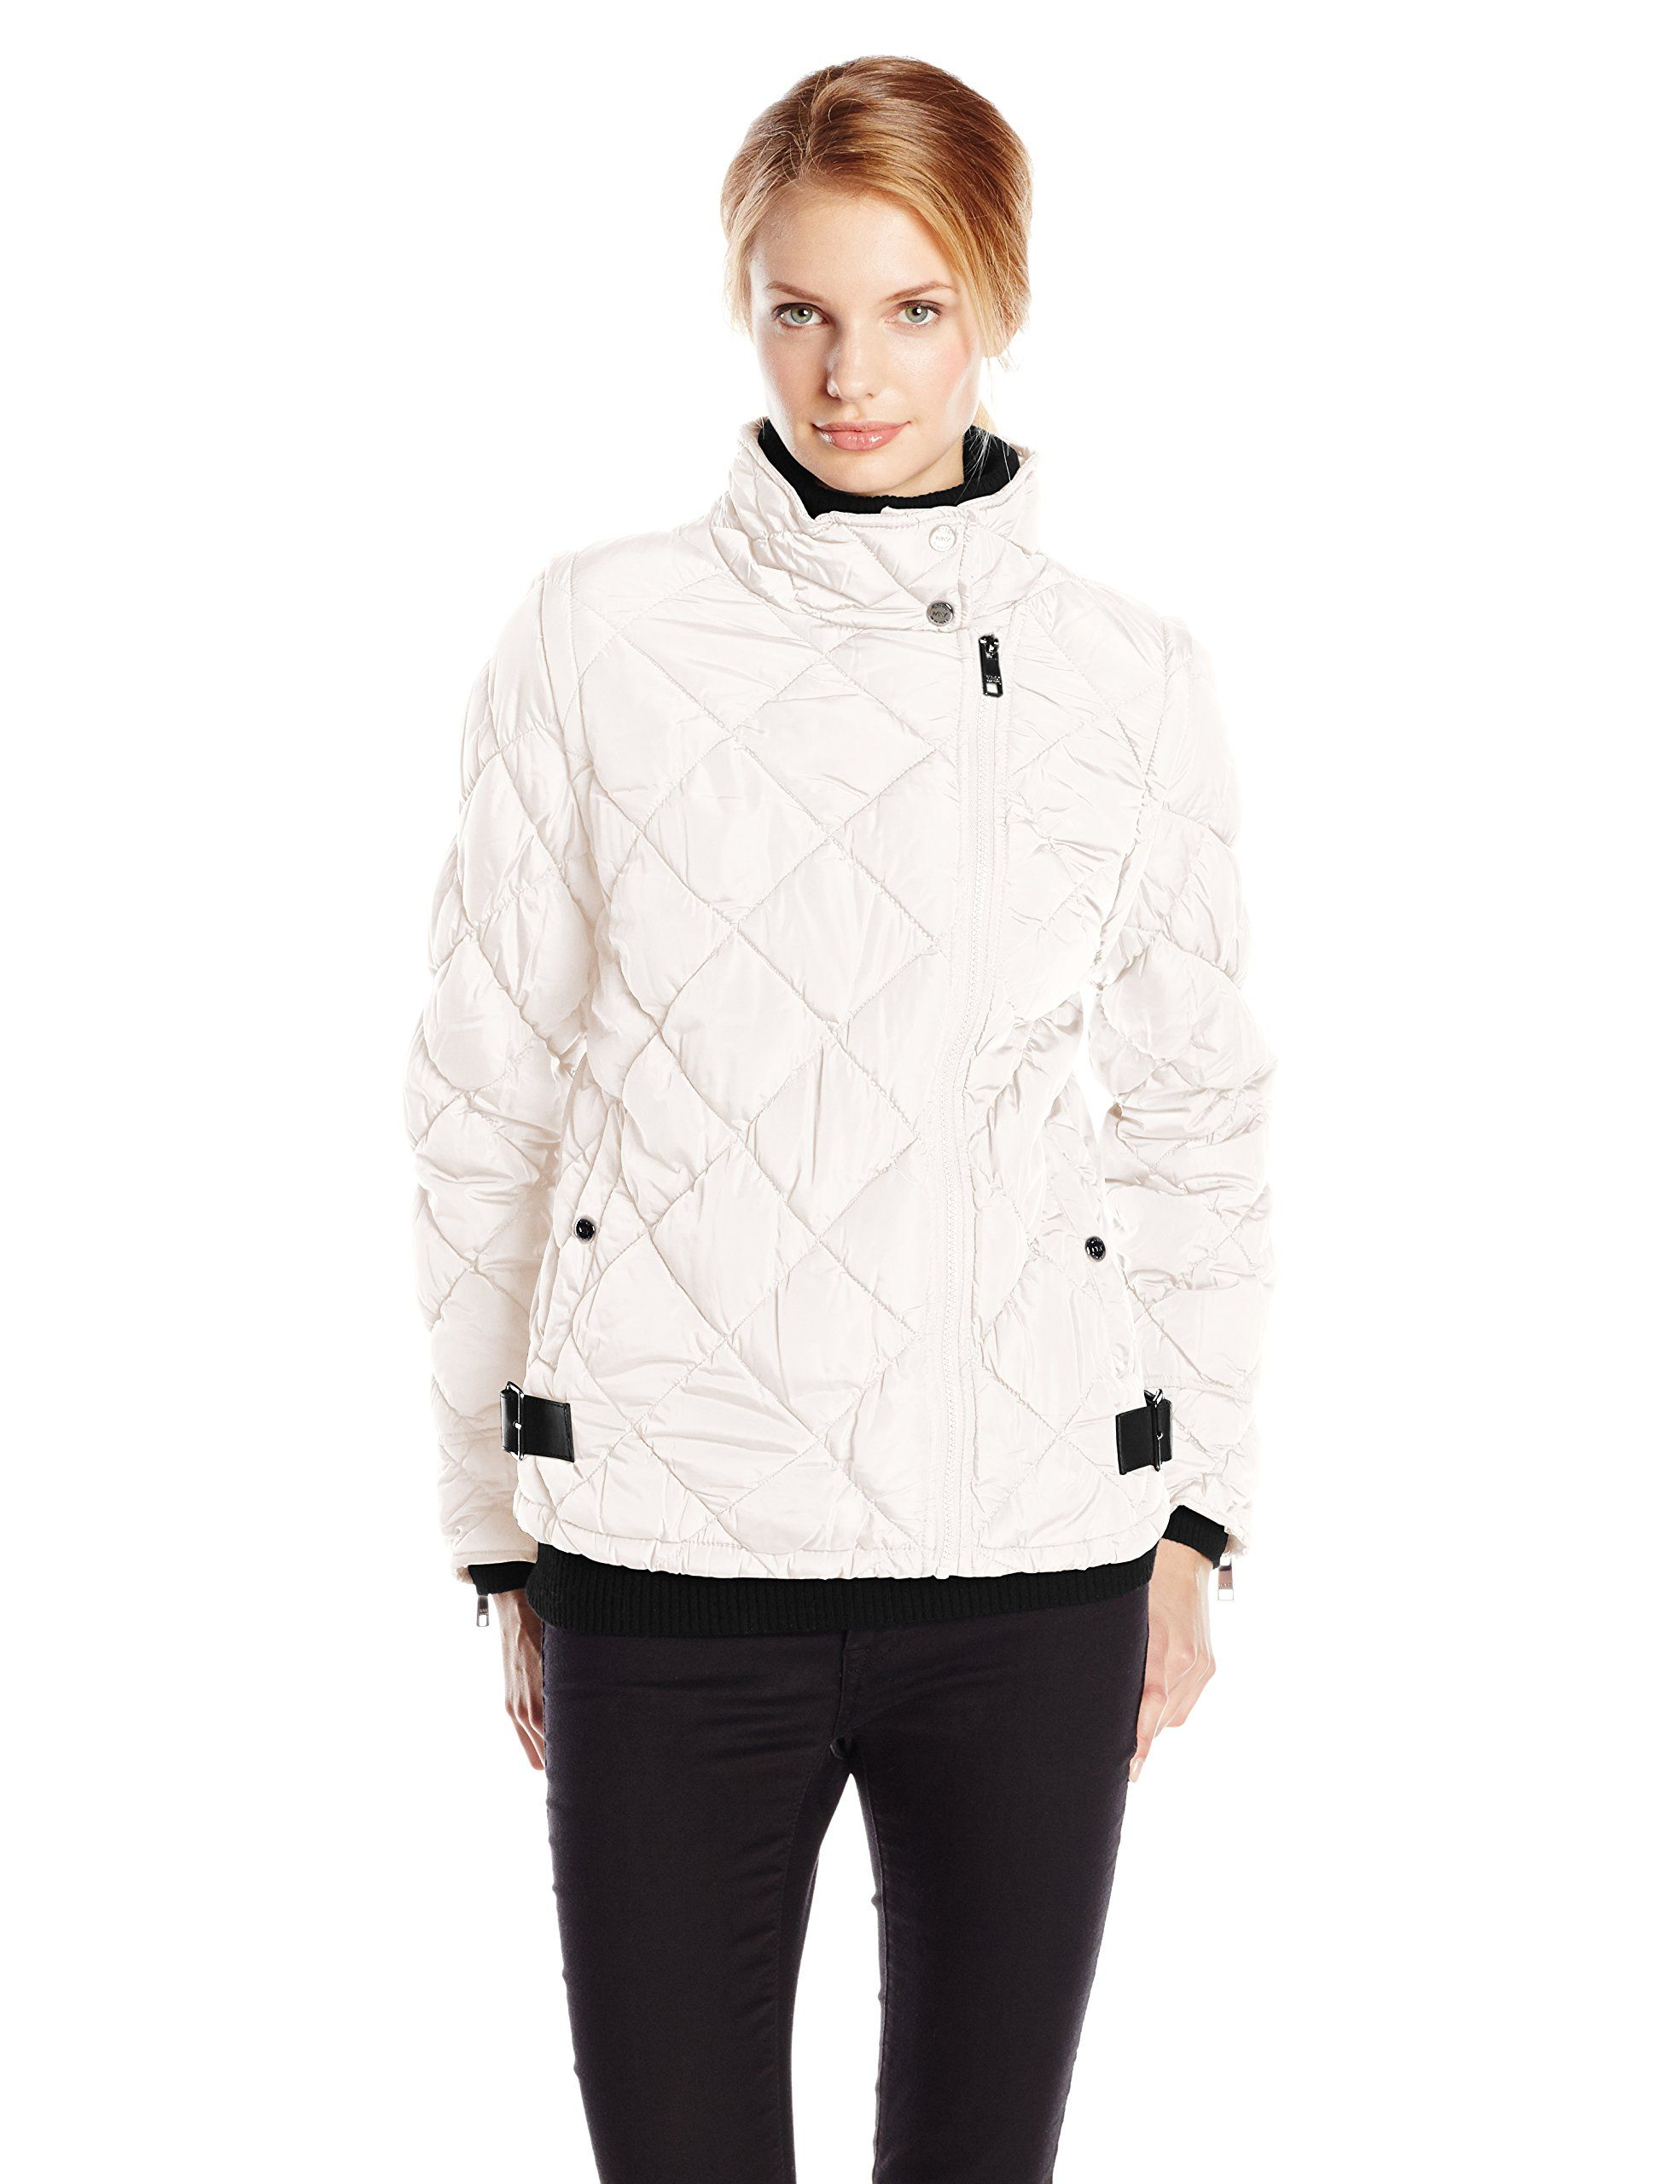 Marc New York Performance Women S Assym Puffer Jacket With Zip Off Sleeves Ivory X Small Coats Jackets Women Jackets Marc New York [ 2560 x 1969 Pixel ]